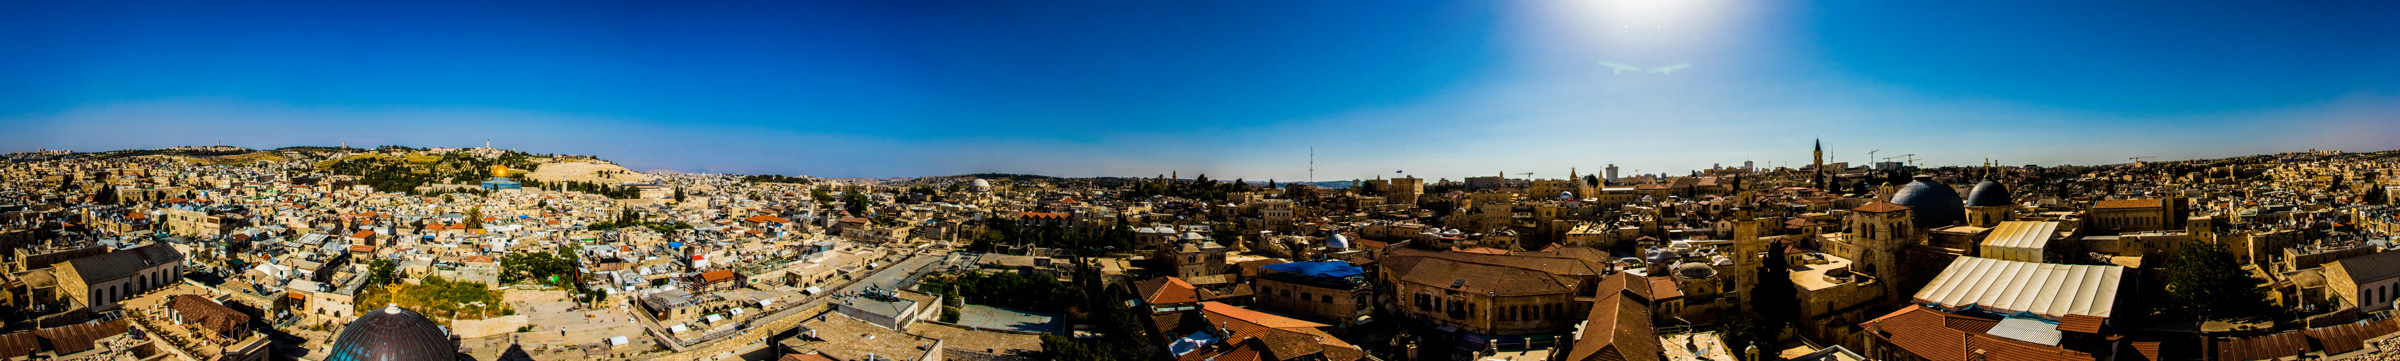 Another amazing panoramic shot by Bobby Rognlien, this one of the entire city of Jerusalem, from the bell tower of the Lutheran Church of the Redeemer.